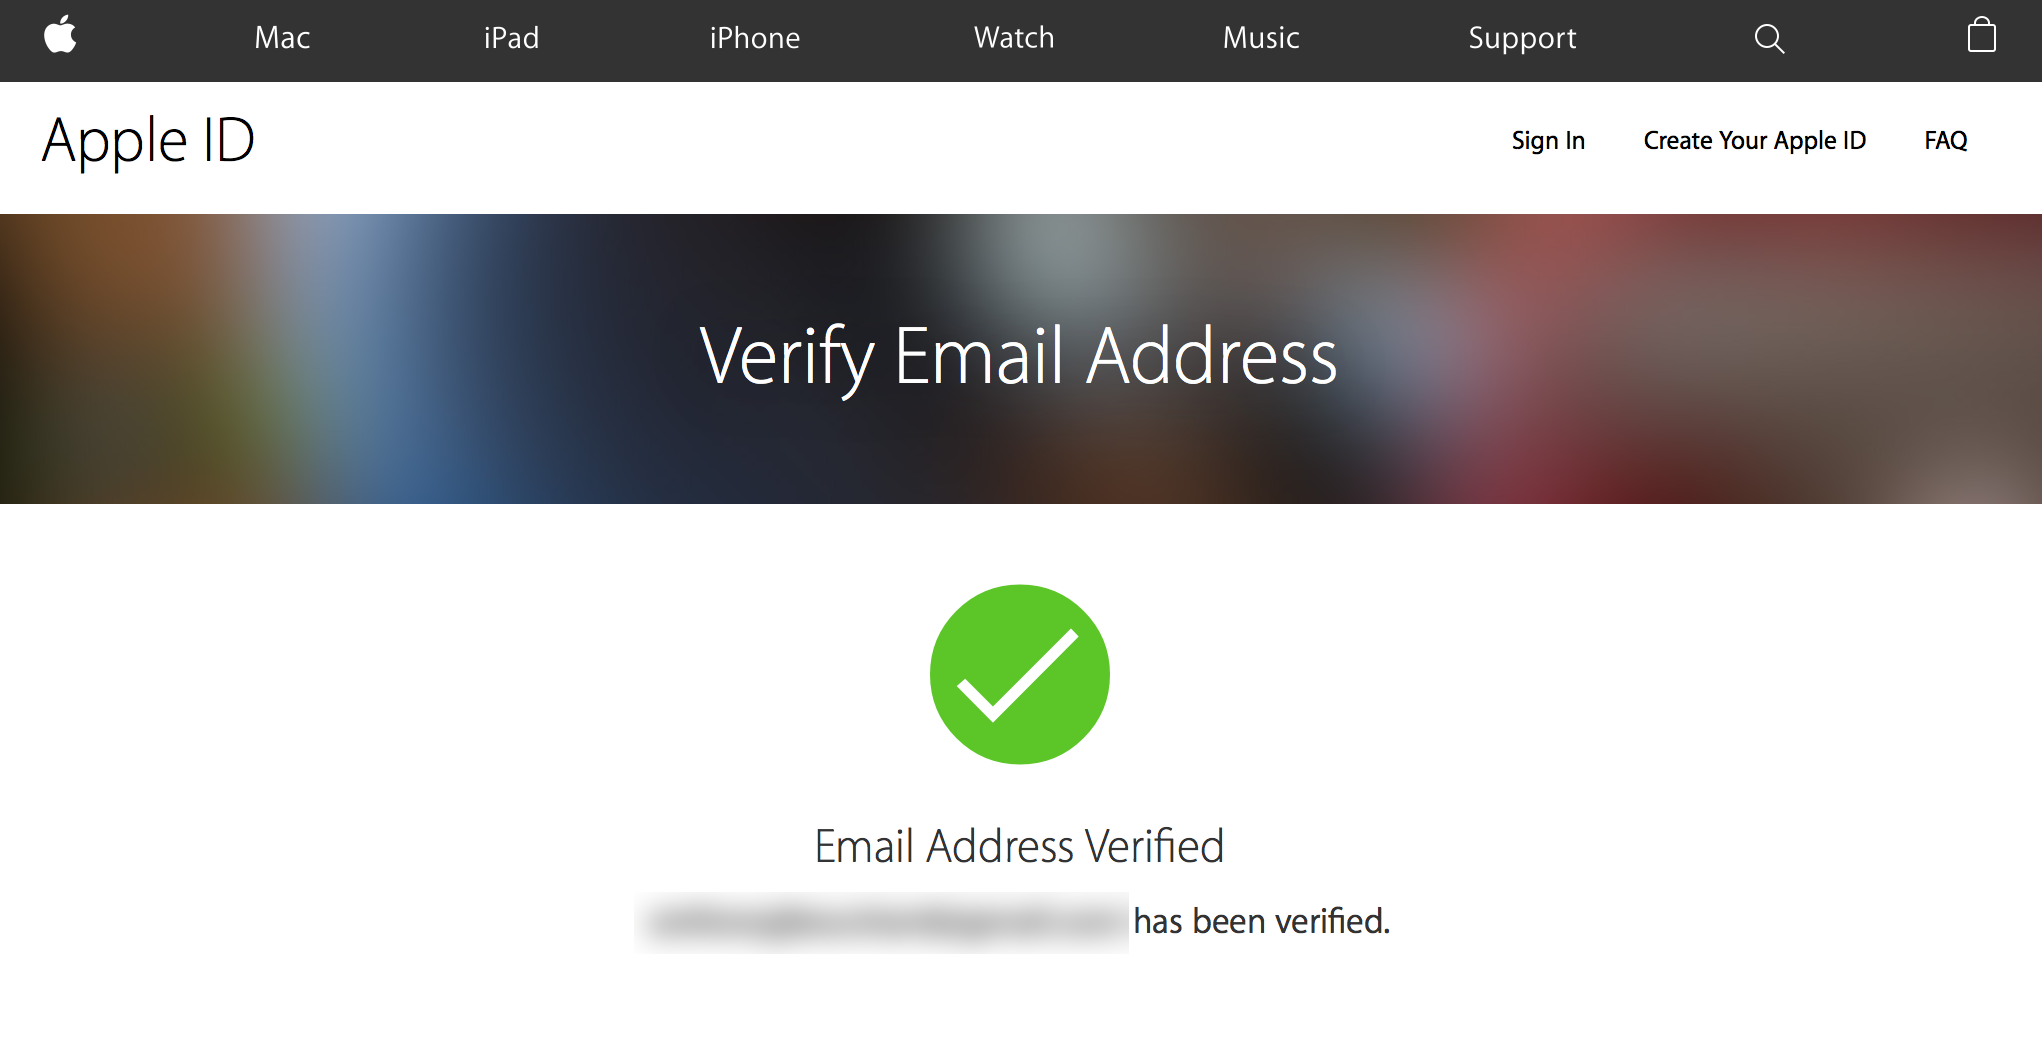 Verify Apple ID Email Success